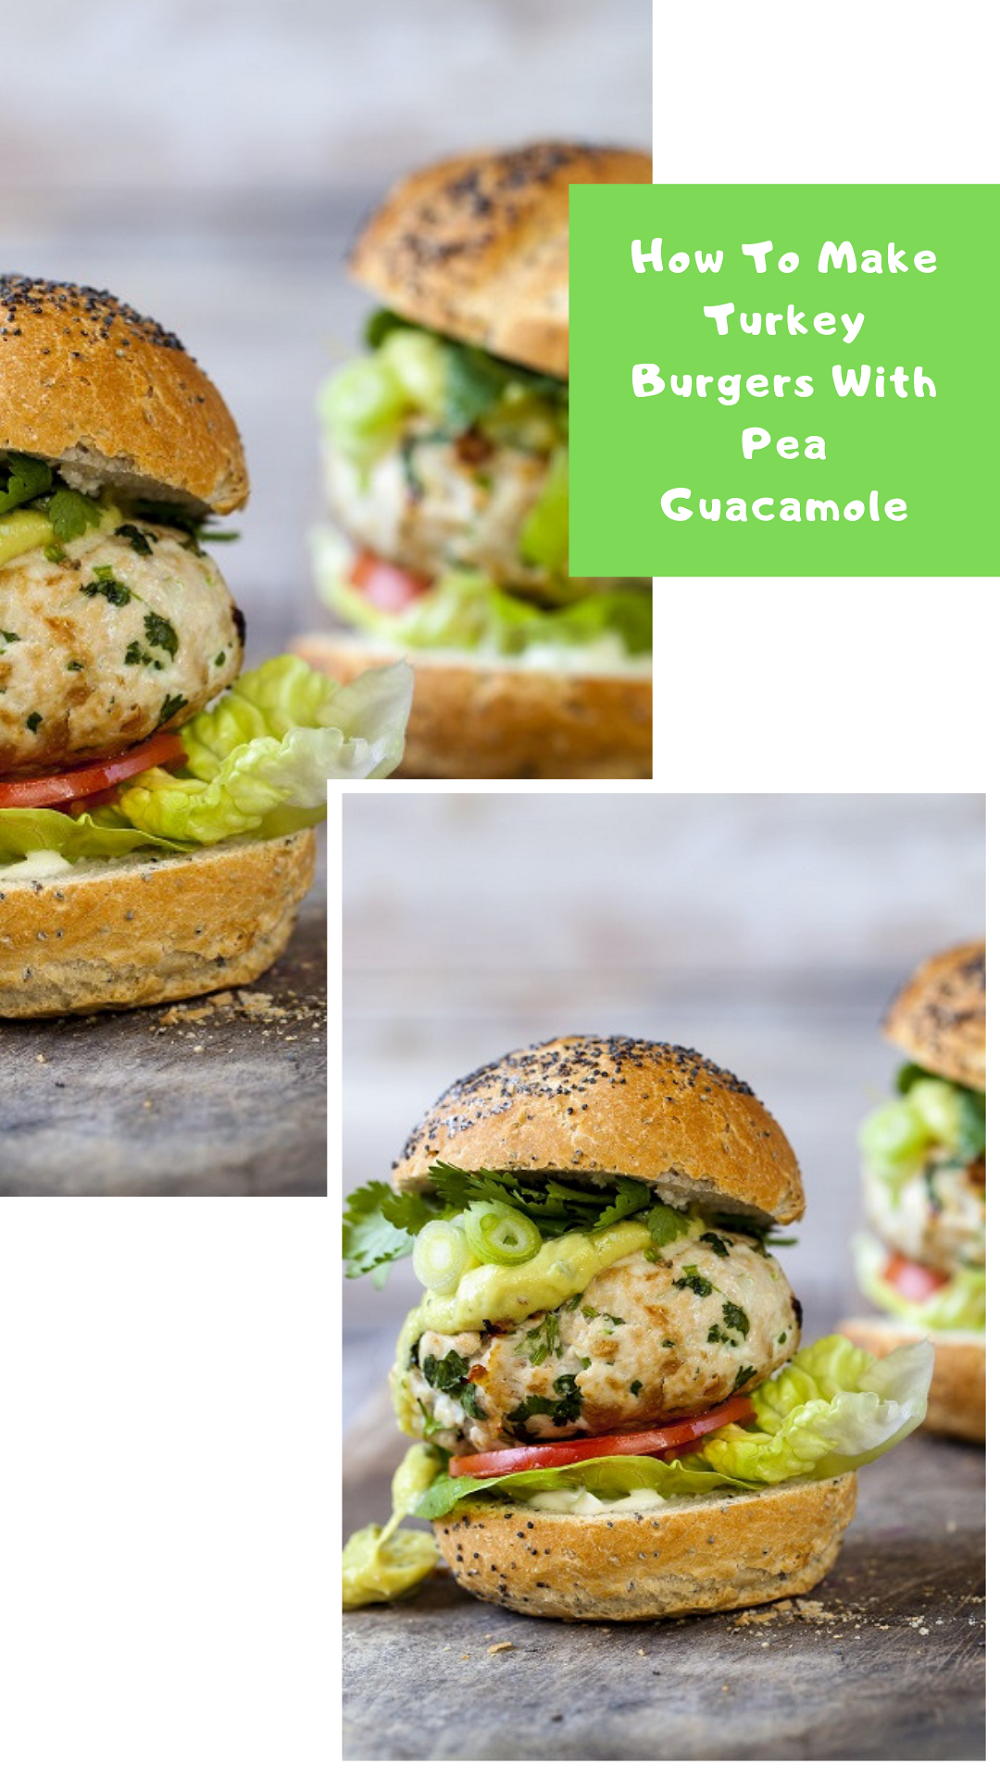 the UK's leading brand for low sodium salt LoSalt, has teamed up with TV chef Sally Bee to make some lovely new and healthy recipes.     These recipes include Turkey Burgers with Pea Guacamole,